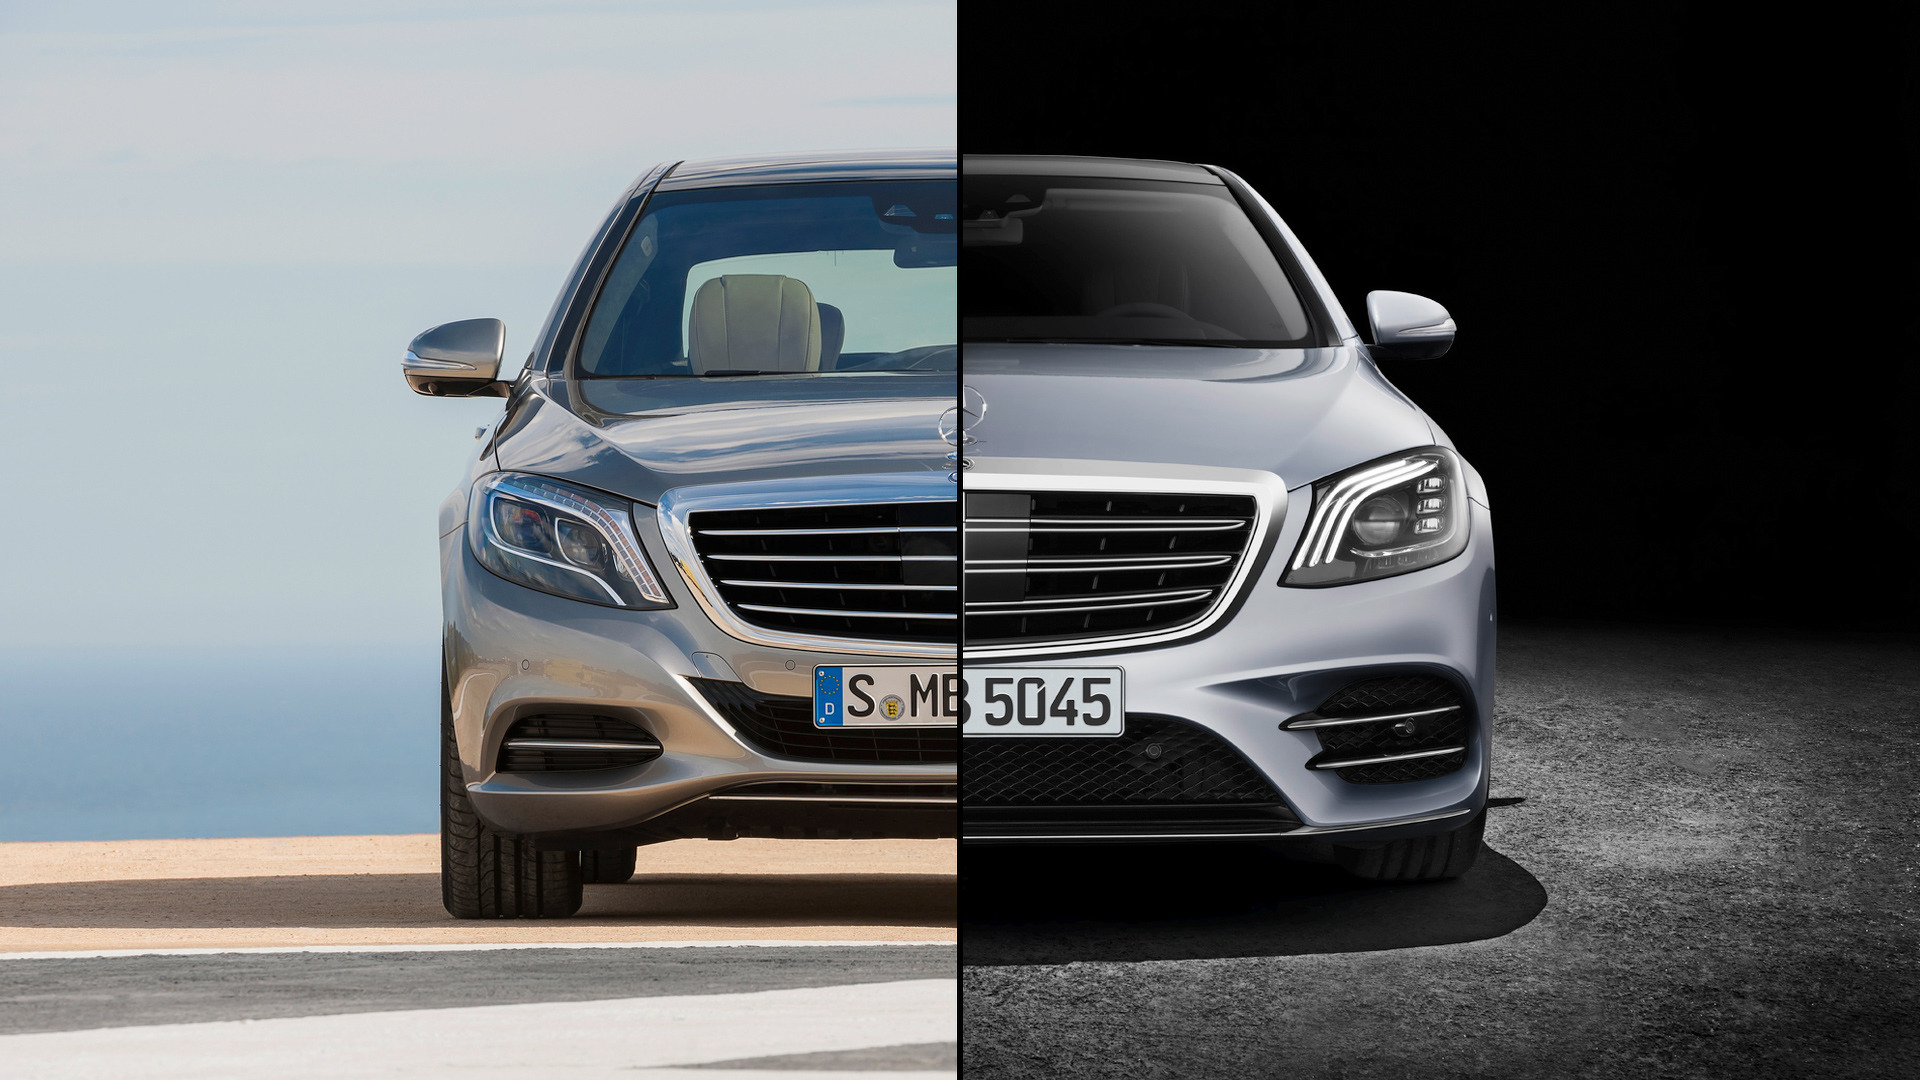 2018 Mercedes S Class Facelift Can You Spot The Changes